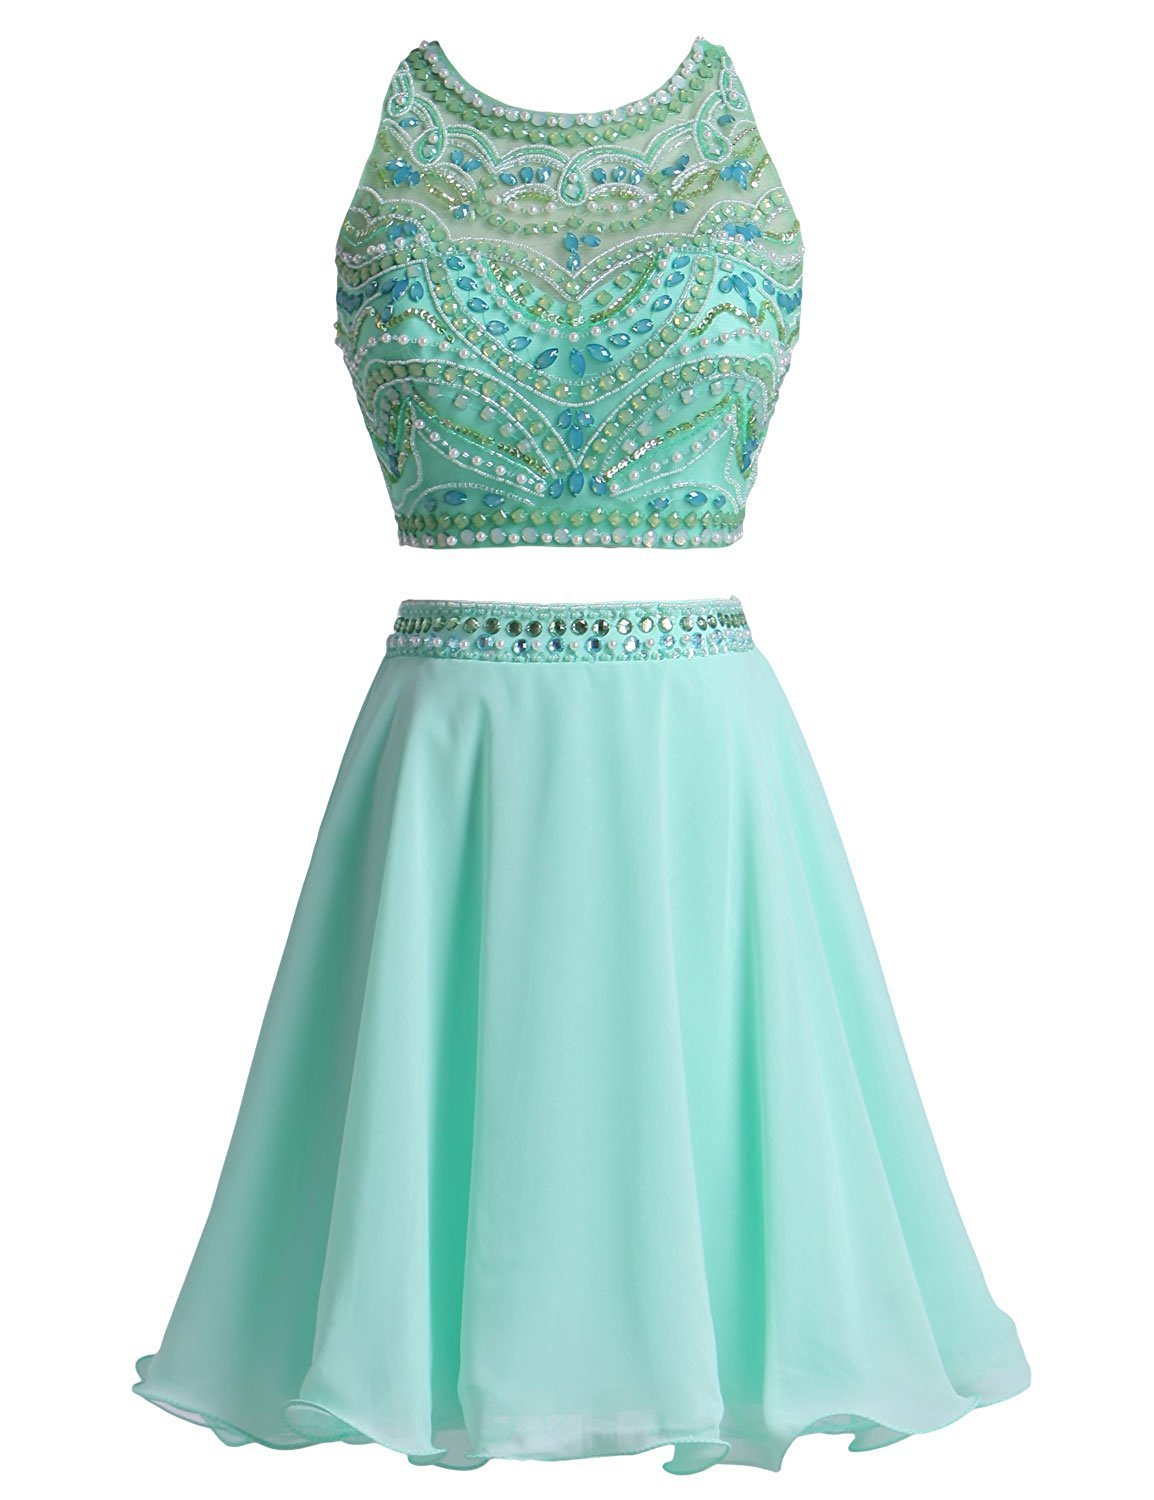 Primary image for Mint A-Line Beaded 2 Piece Homecoming Dress Halter Two Pieces Short Prom Dresses